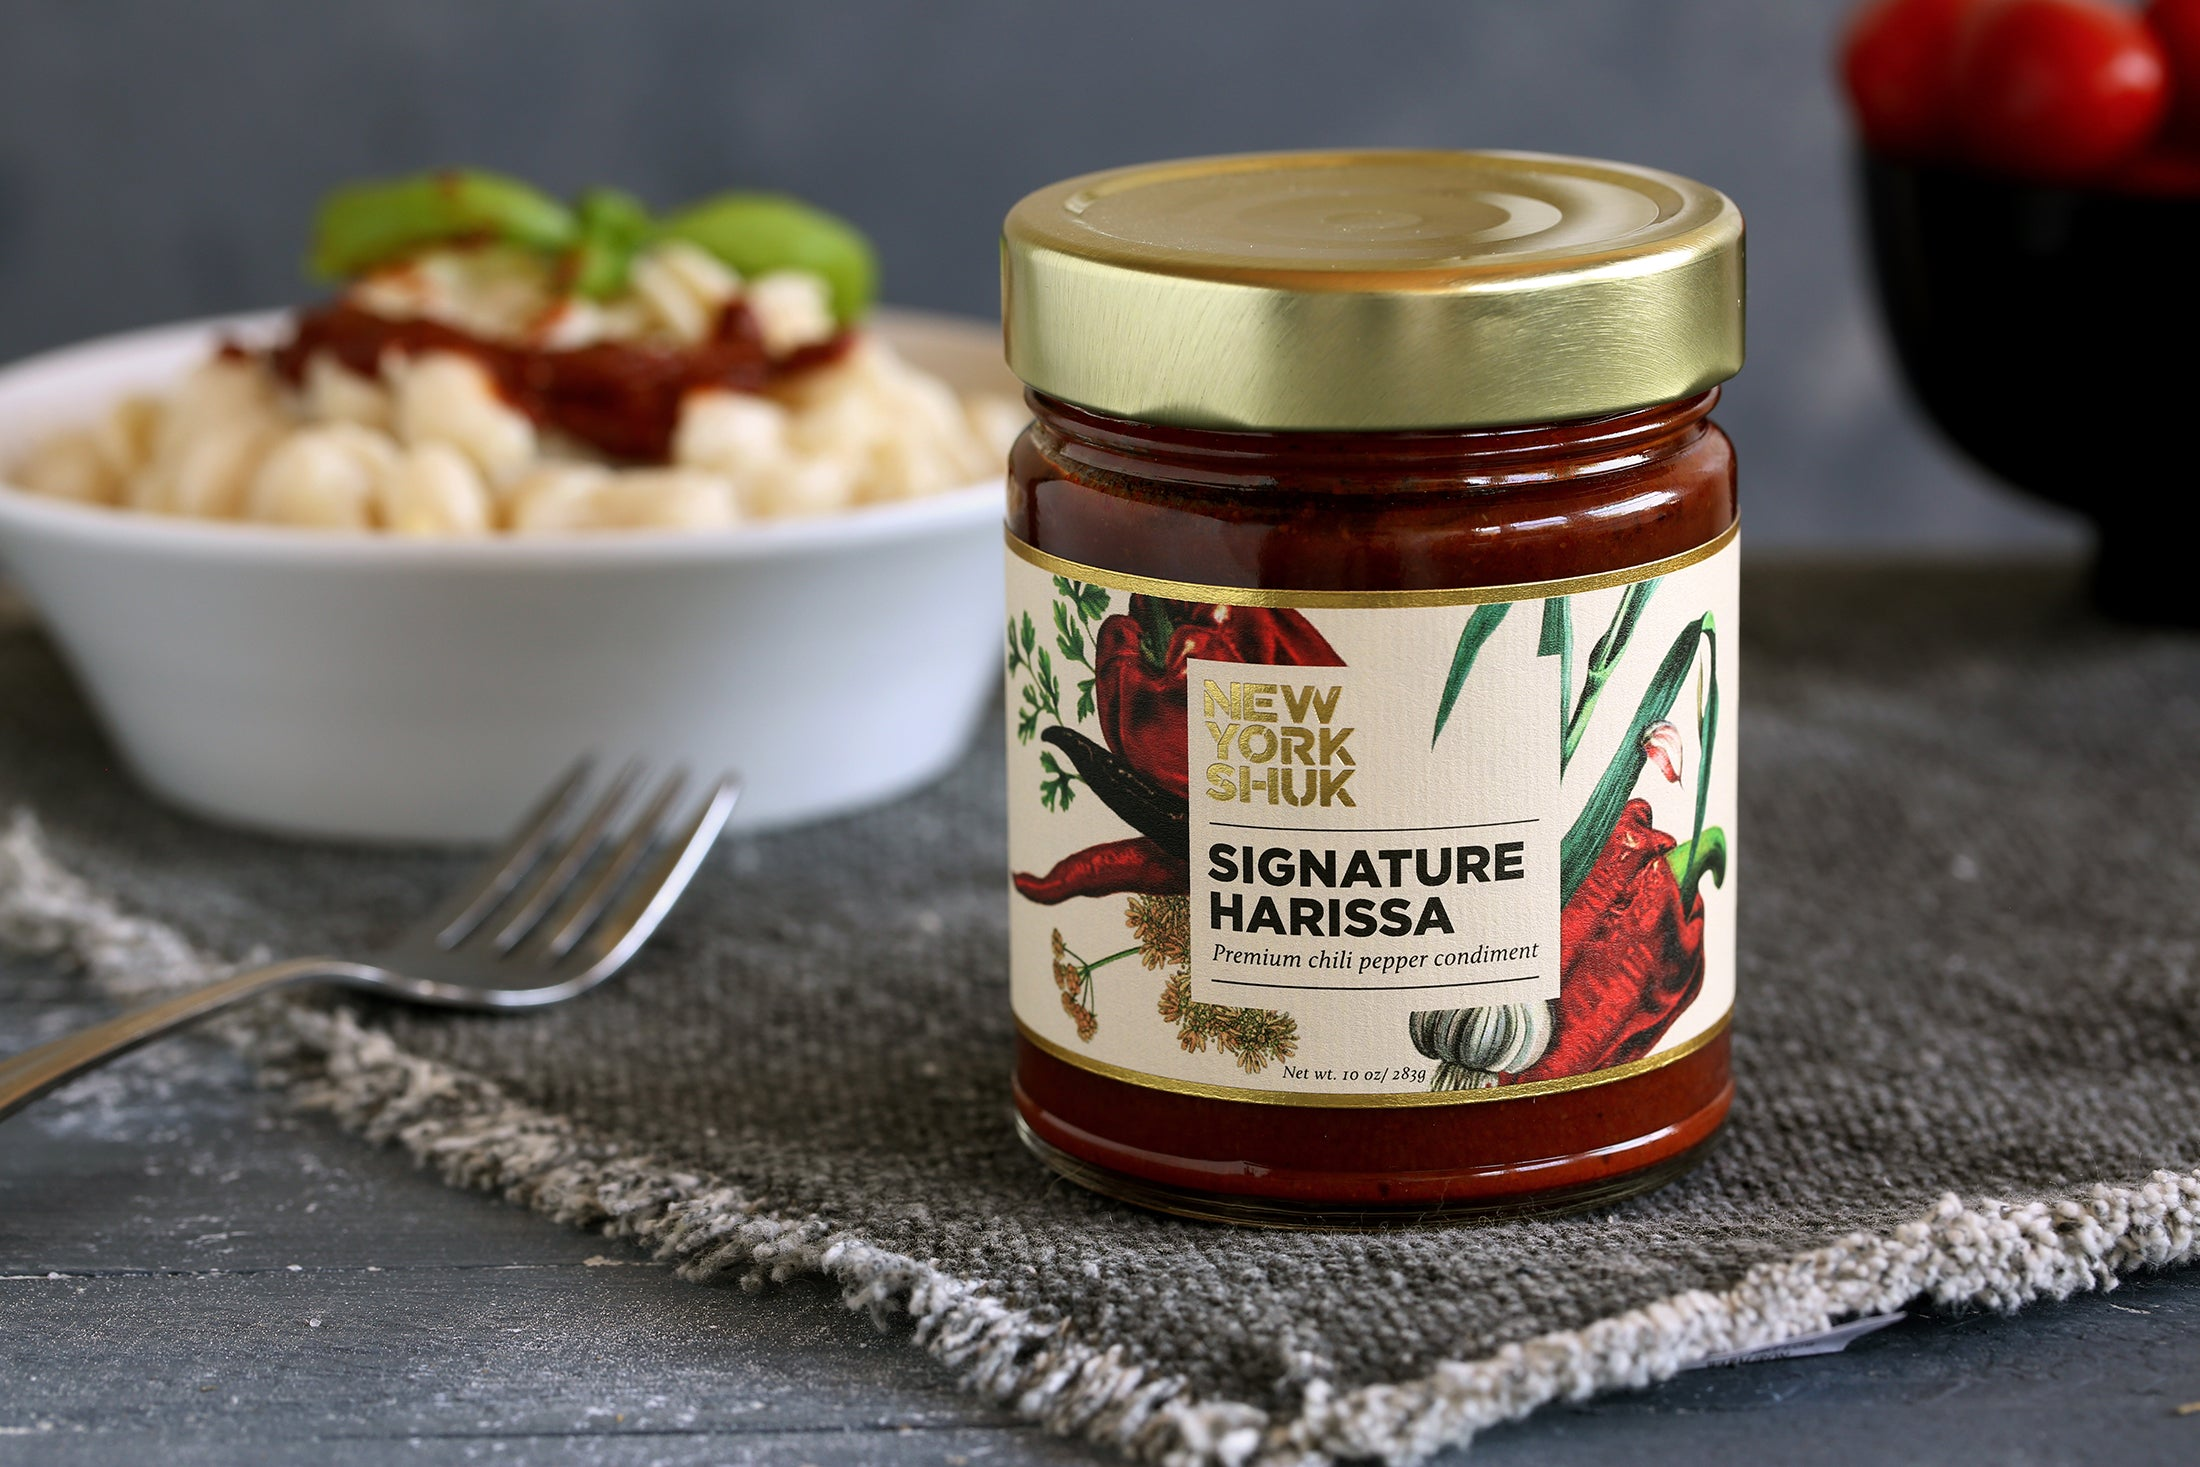 <a target='_blank' href='https://www.nyshuk.com/harissa101/'>New York Shuk's <b>Signature Harissa</b></a>